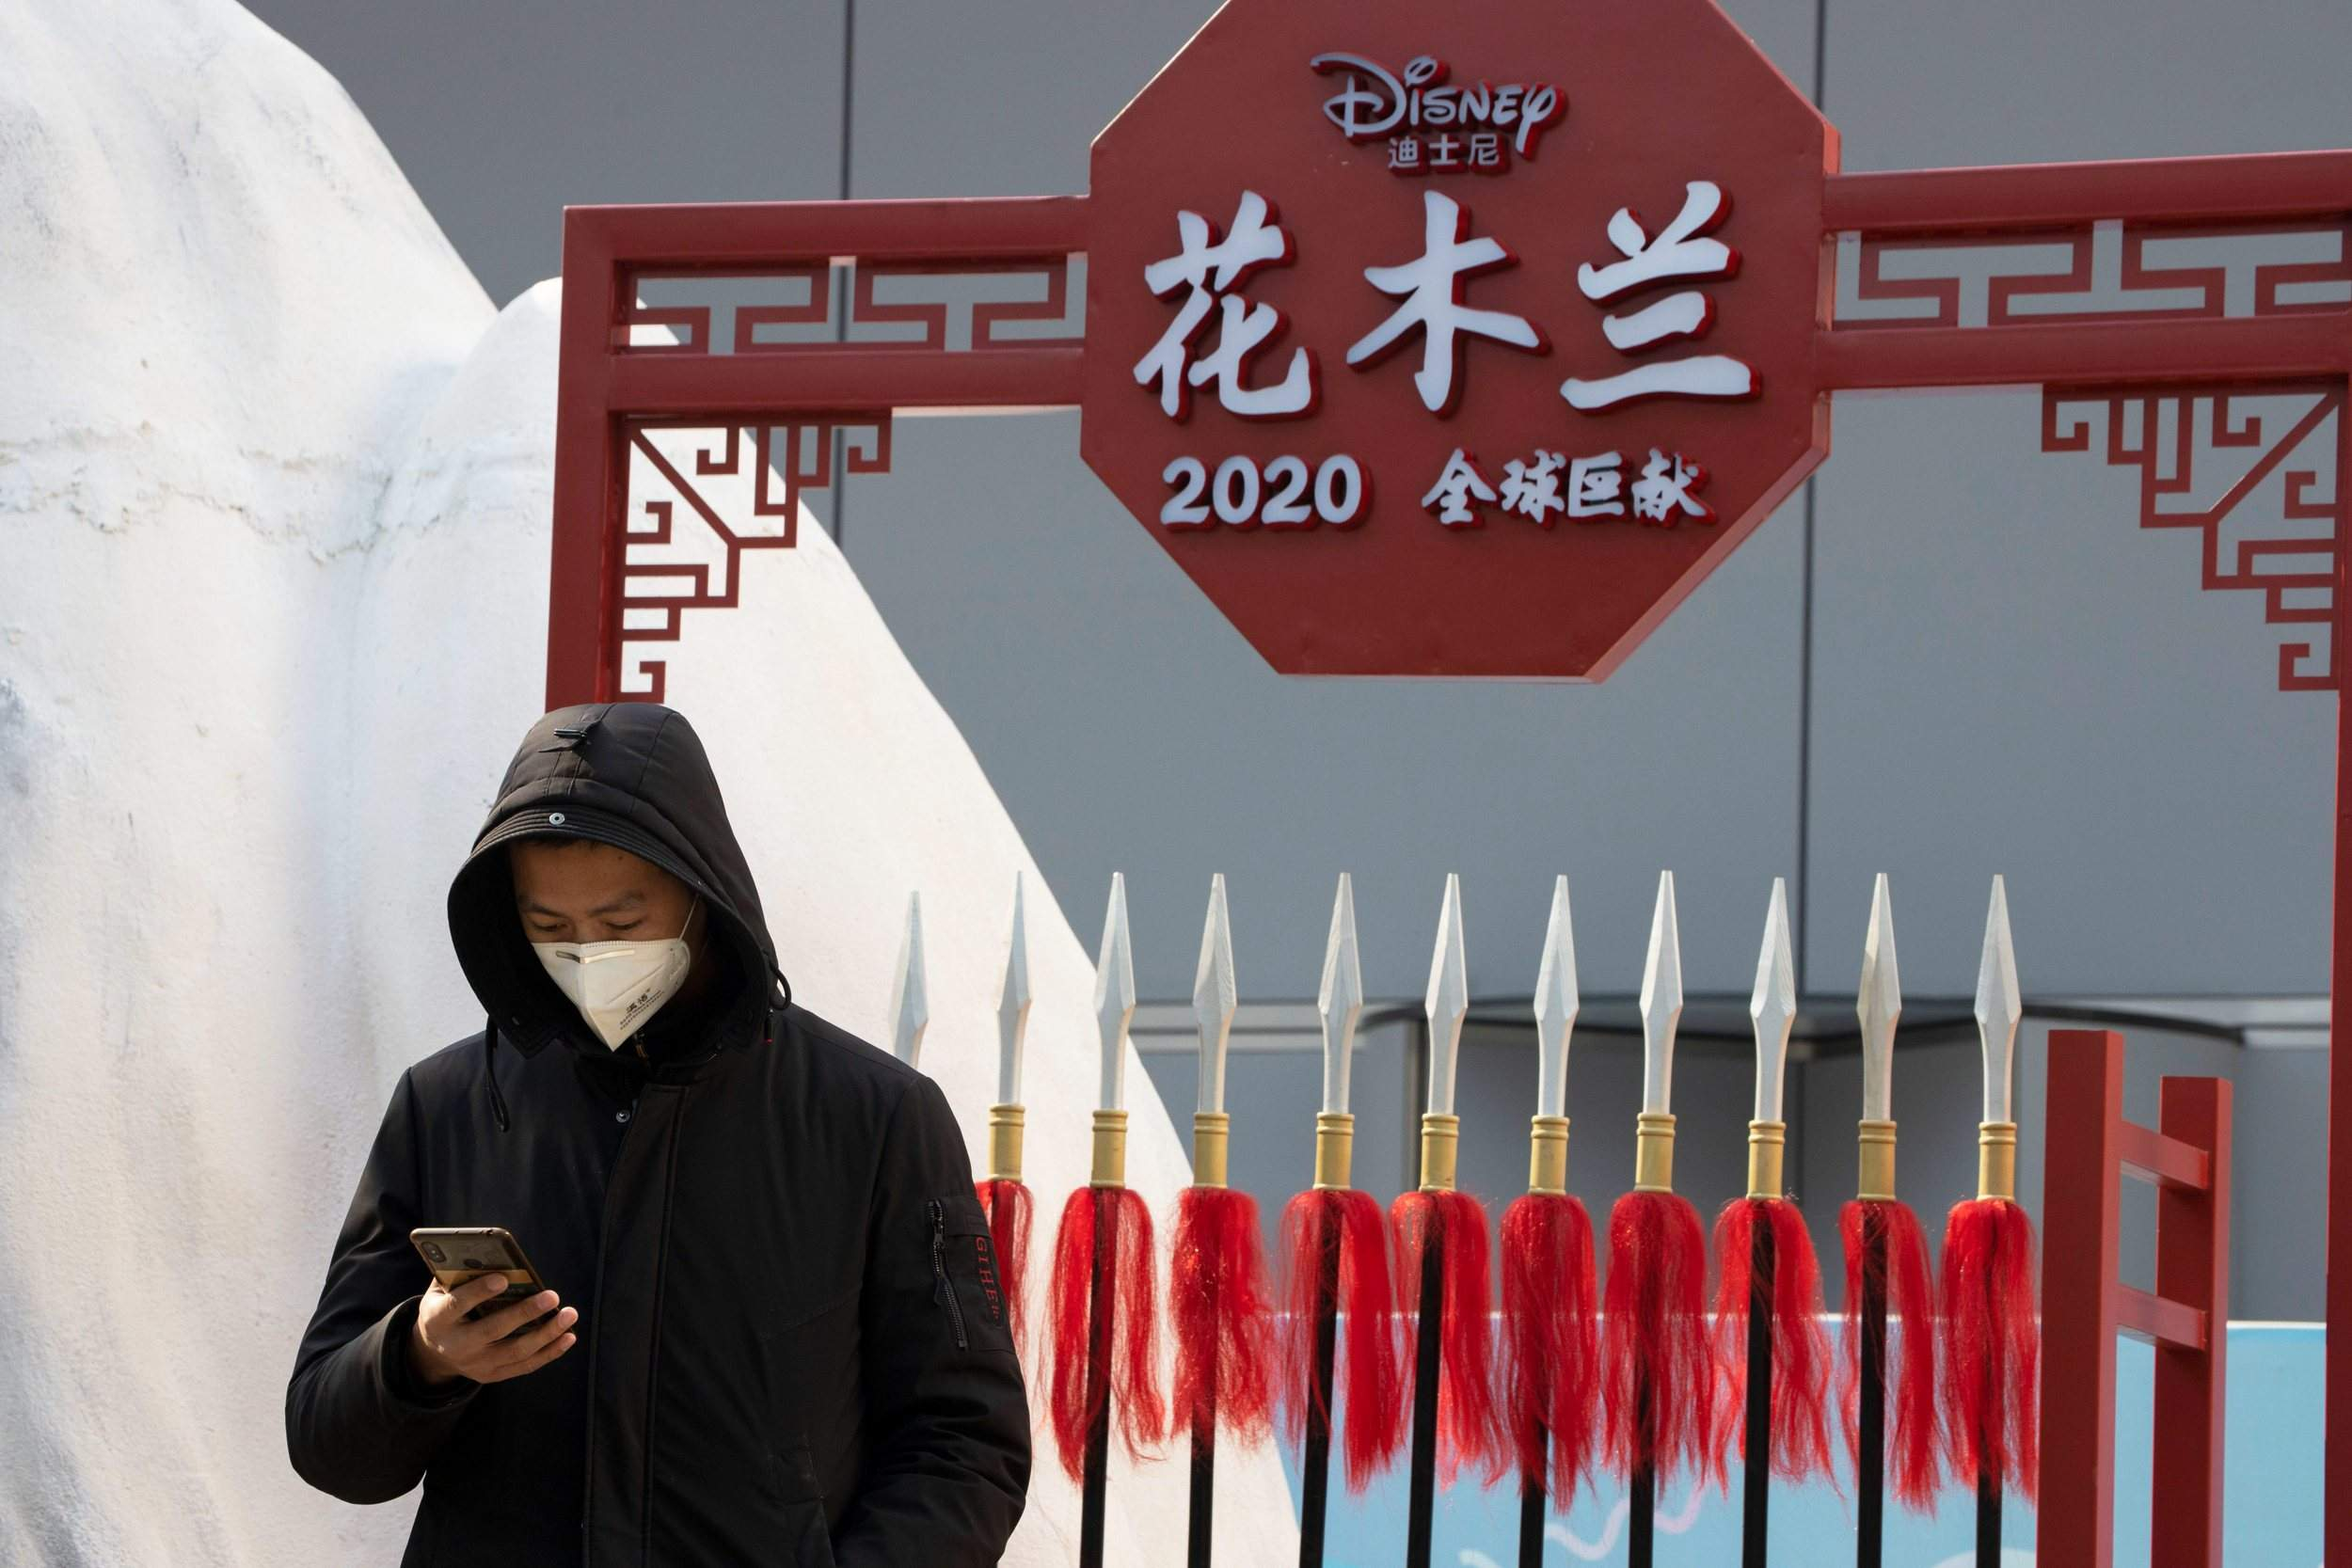 Disney facing backlash for filming 'Mulan' live-action remake in Xinjiang